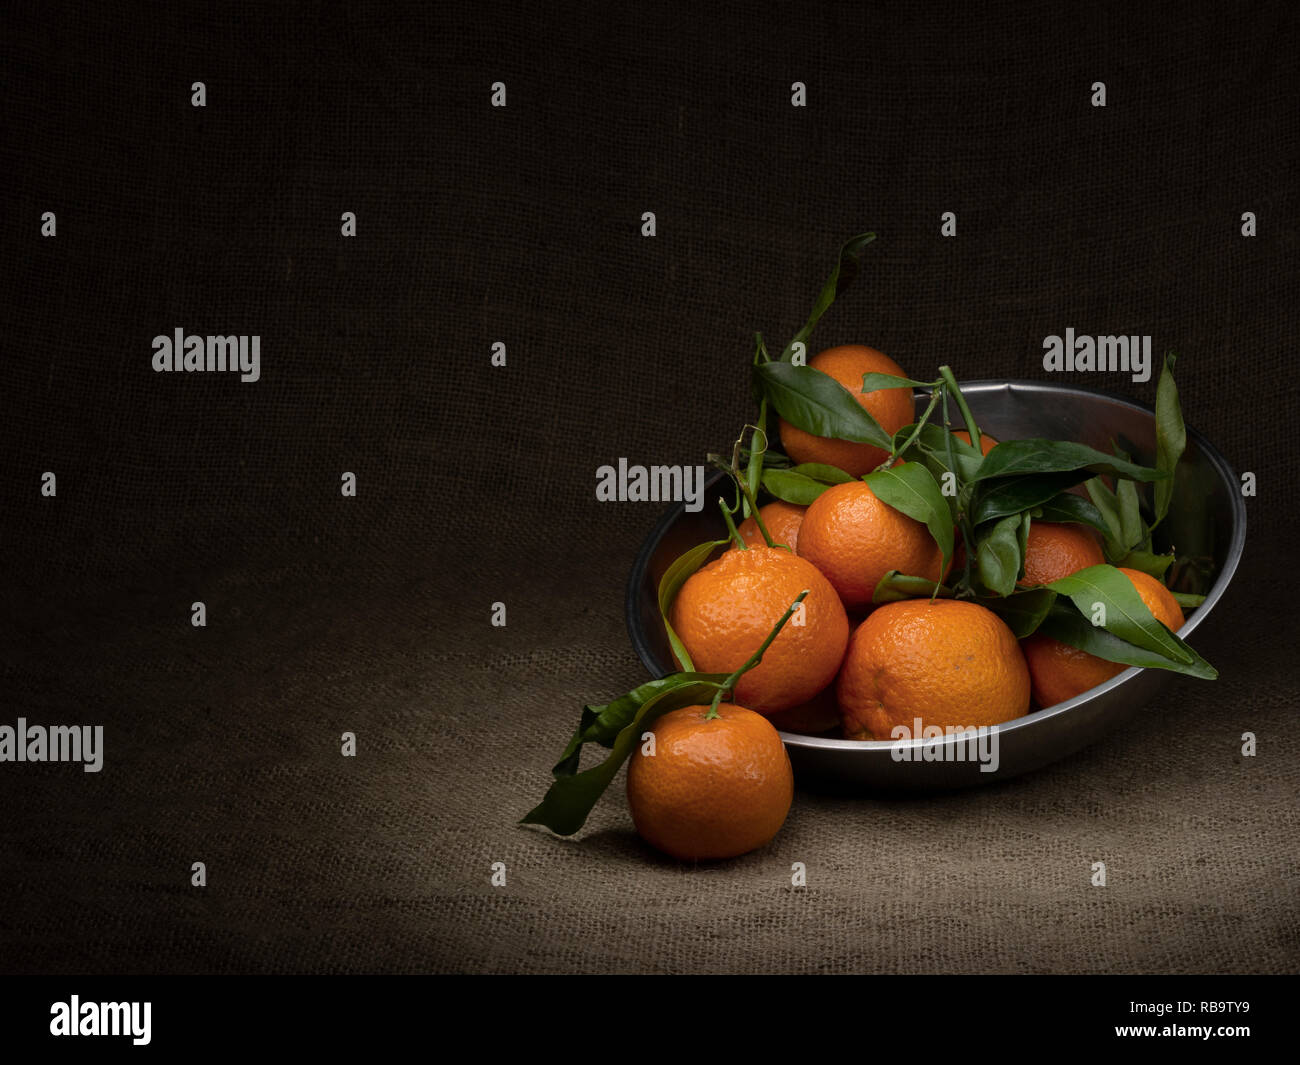 Oranges. Several fruit in a metal container, light painted with copyspace and vignette effect. - Stock Image